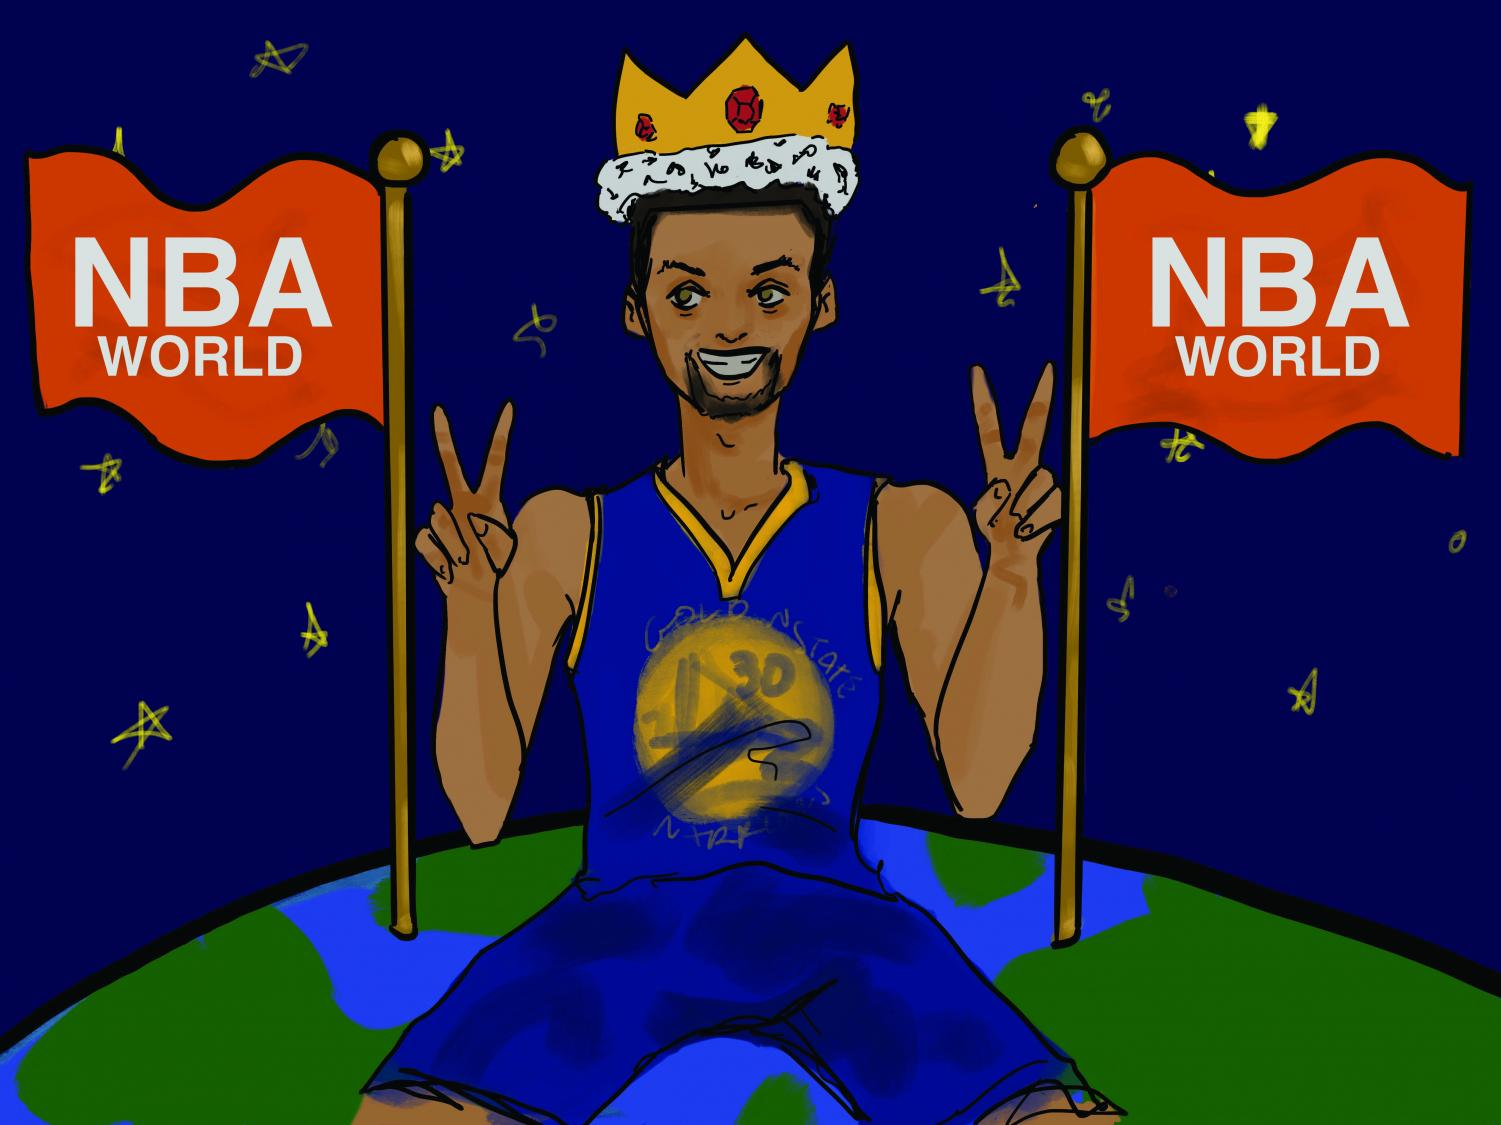 Stephen Curry and the Golden State Warriors are on top of the NBA world after winning their second championship.